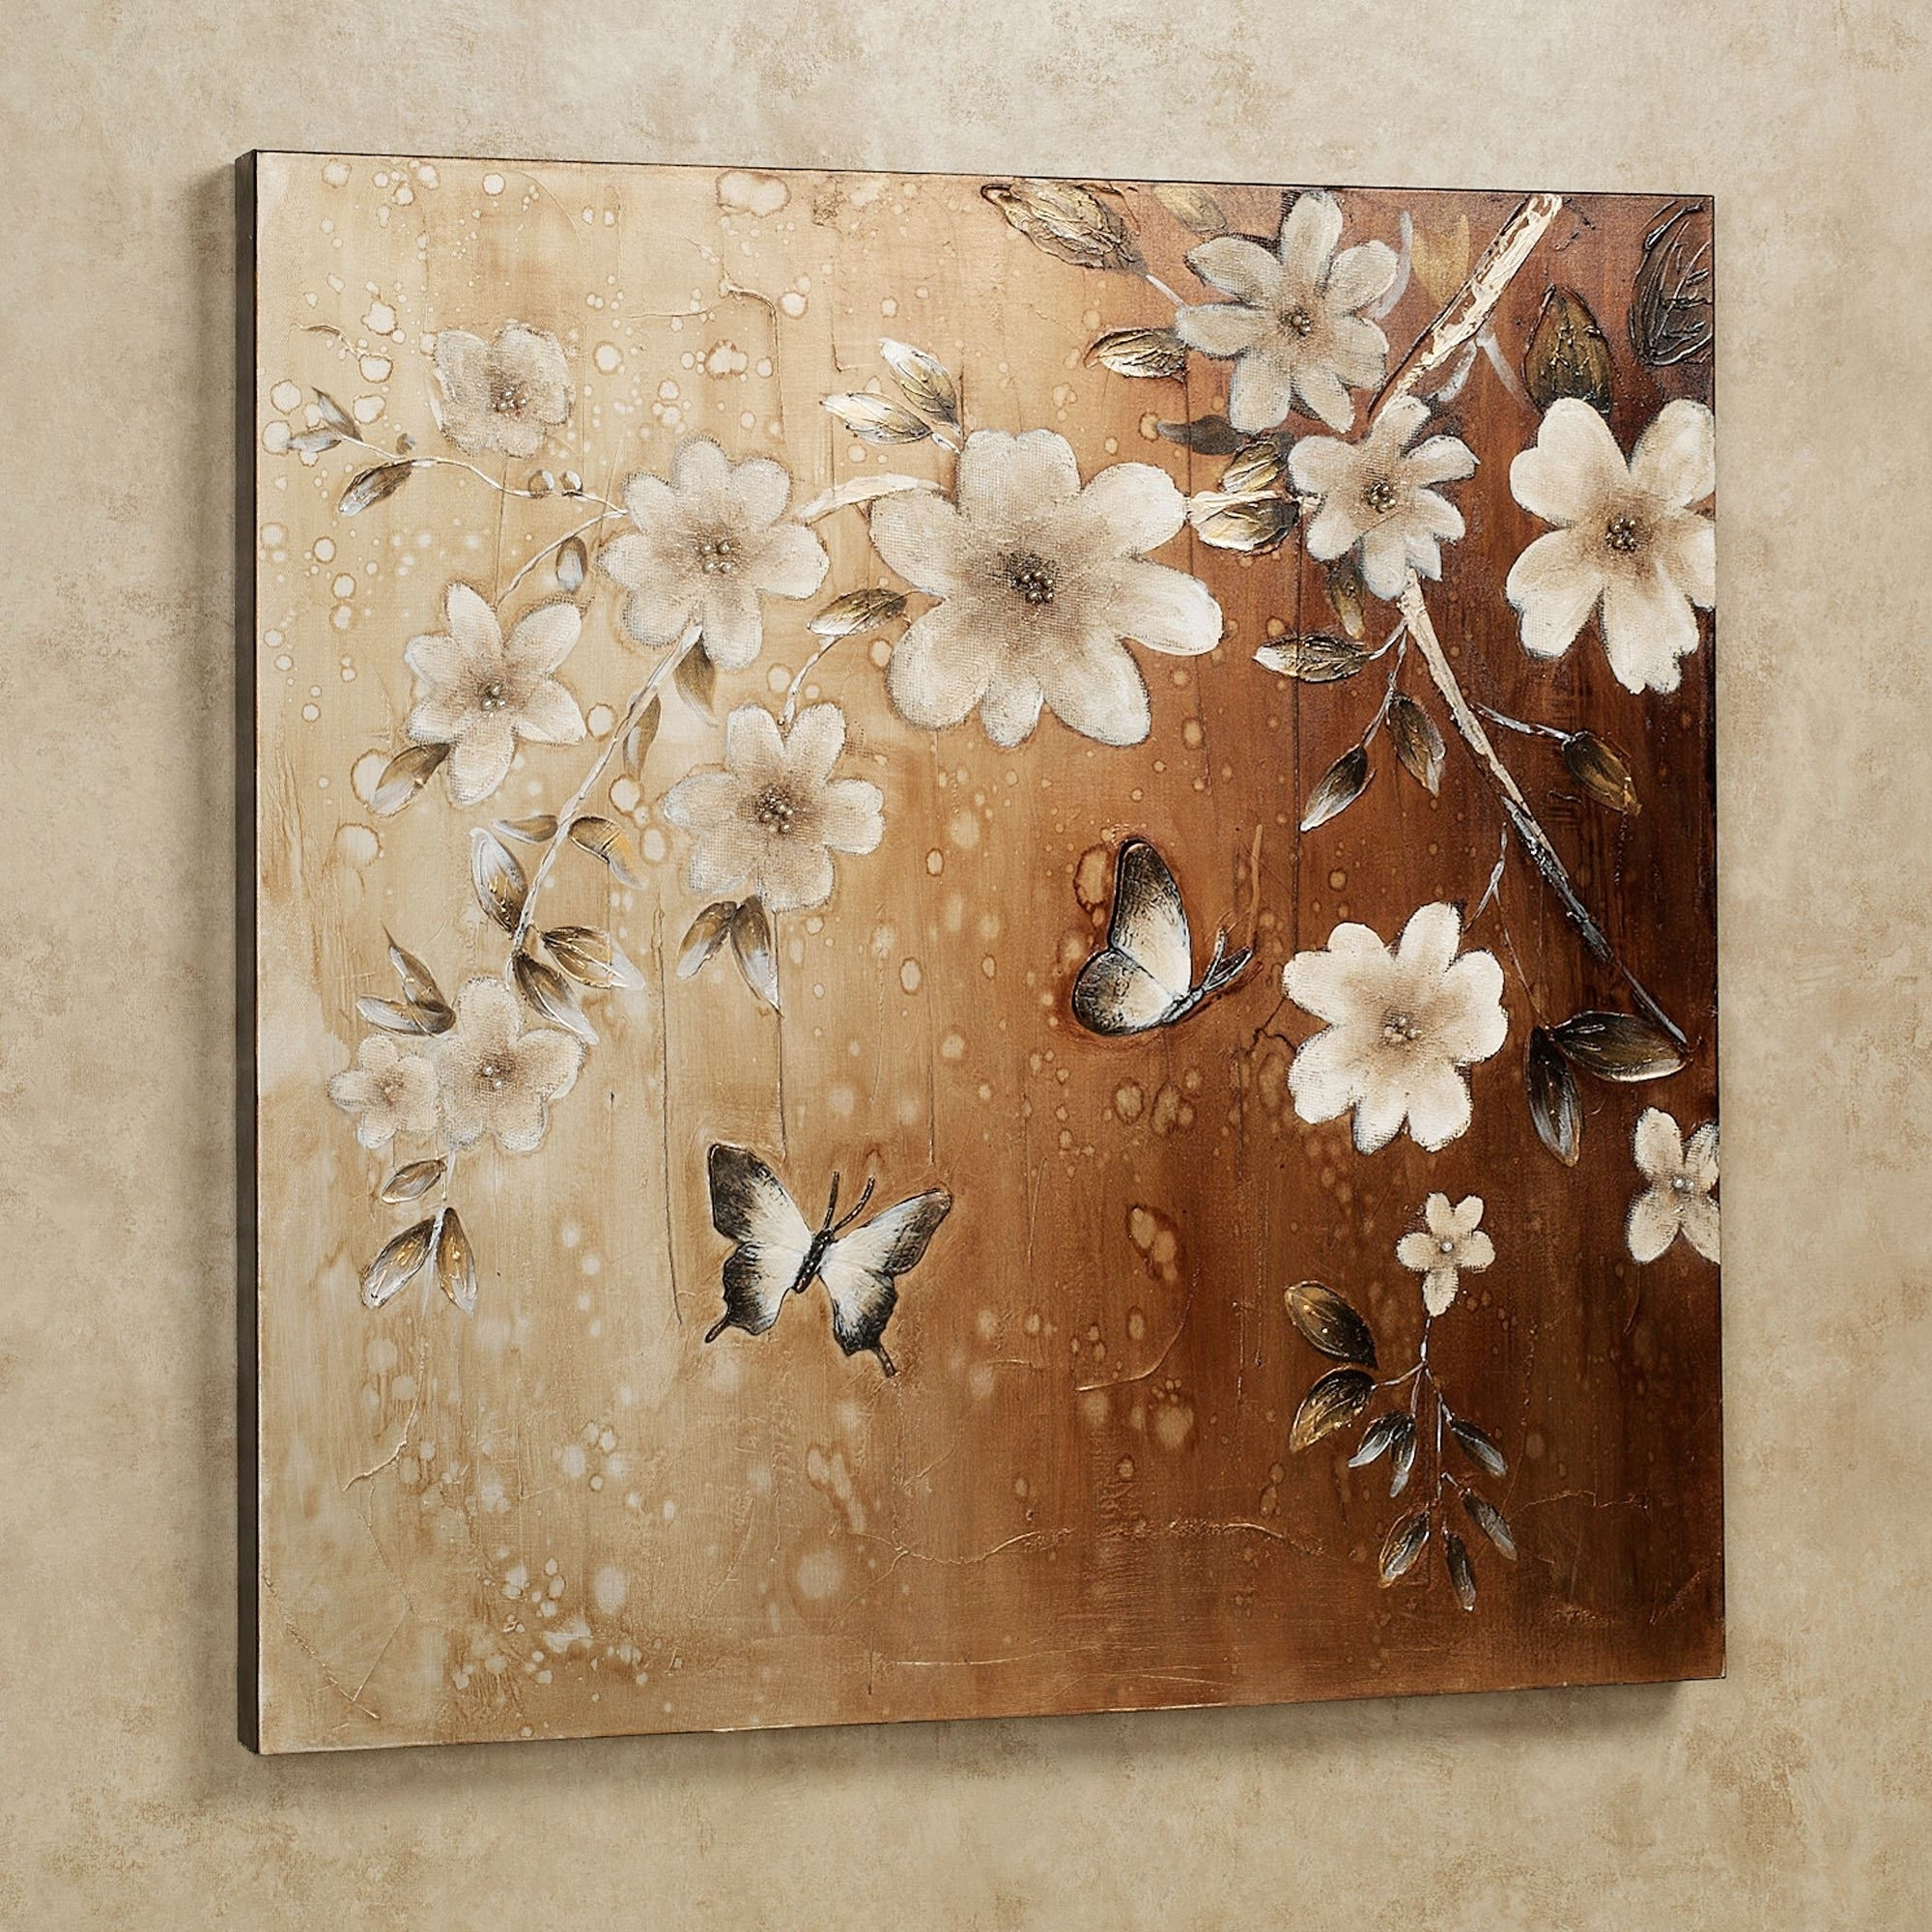 Canvas Wall Art Of Flowers For Favorite Wall Art Designs: Floral Canvas Wall Art Midday Sun Canvas Wall (View 2 of 15)